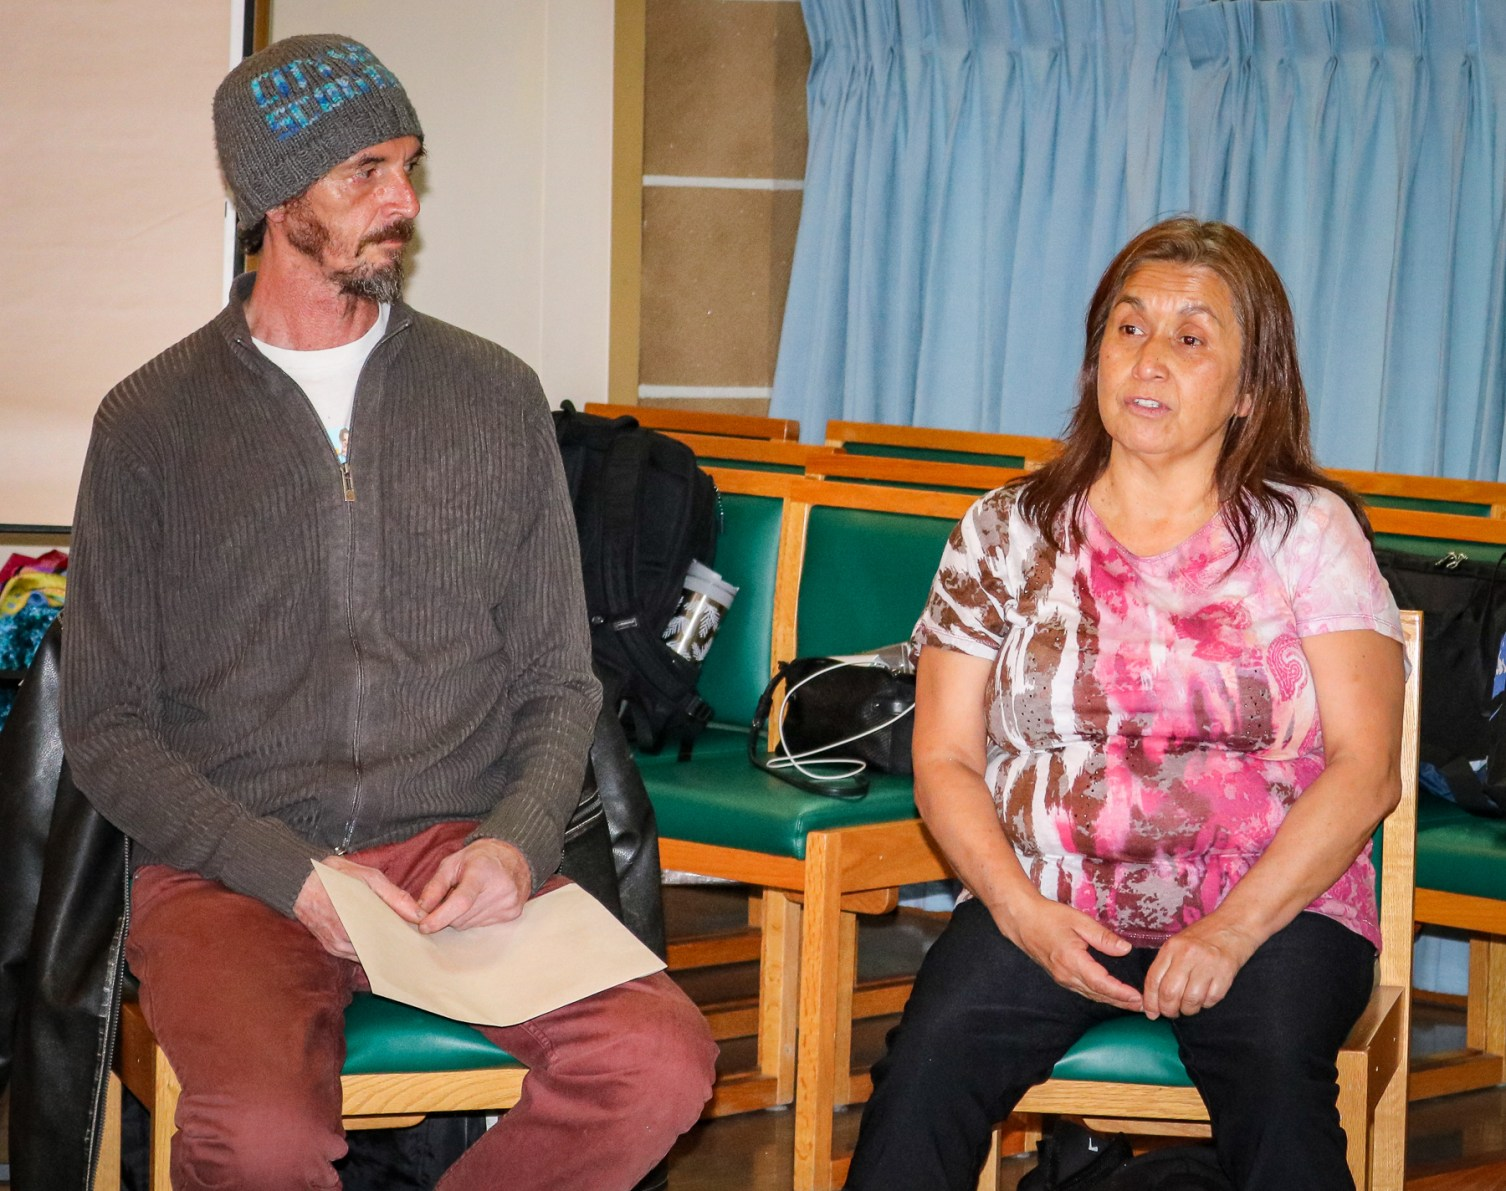 Guest story-tellers from Our Place Society, Shirley and Carlos